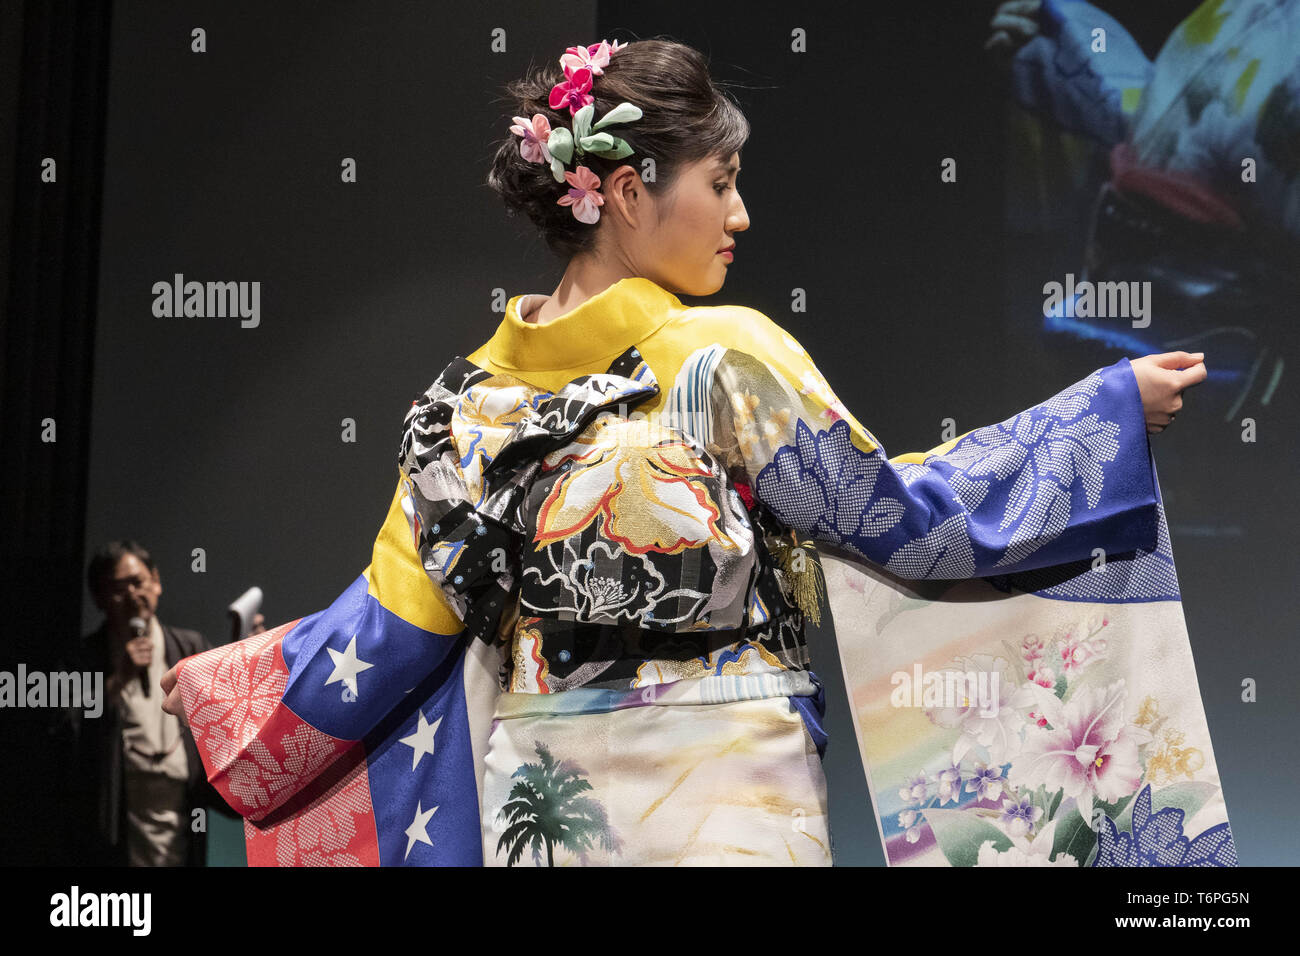 Tokyo, Japan. 2nd May, 2019. A model dressed up a Japanese kimono inspired in the Bolivarian Republic of Venezuela walks on the runway during the Imagine One World Kimono Project event in Tokyo. The Imagine One World Kimono Project aims to create 213 kimonos to represent each of the nations that will take part in the next 2020 Tokyo Olympic and Paralympic Games. Credit: Rodrigo Reyes Marin/ZUMA Wire/Alamy Live News - Stock Image